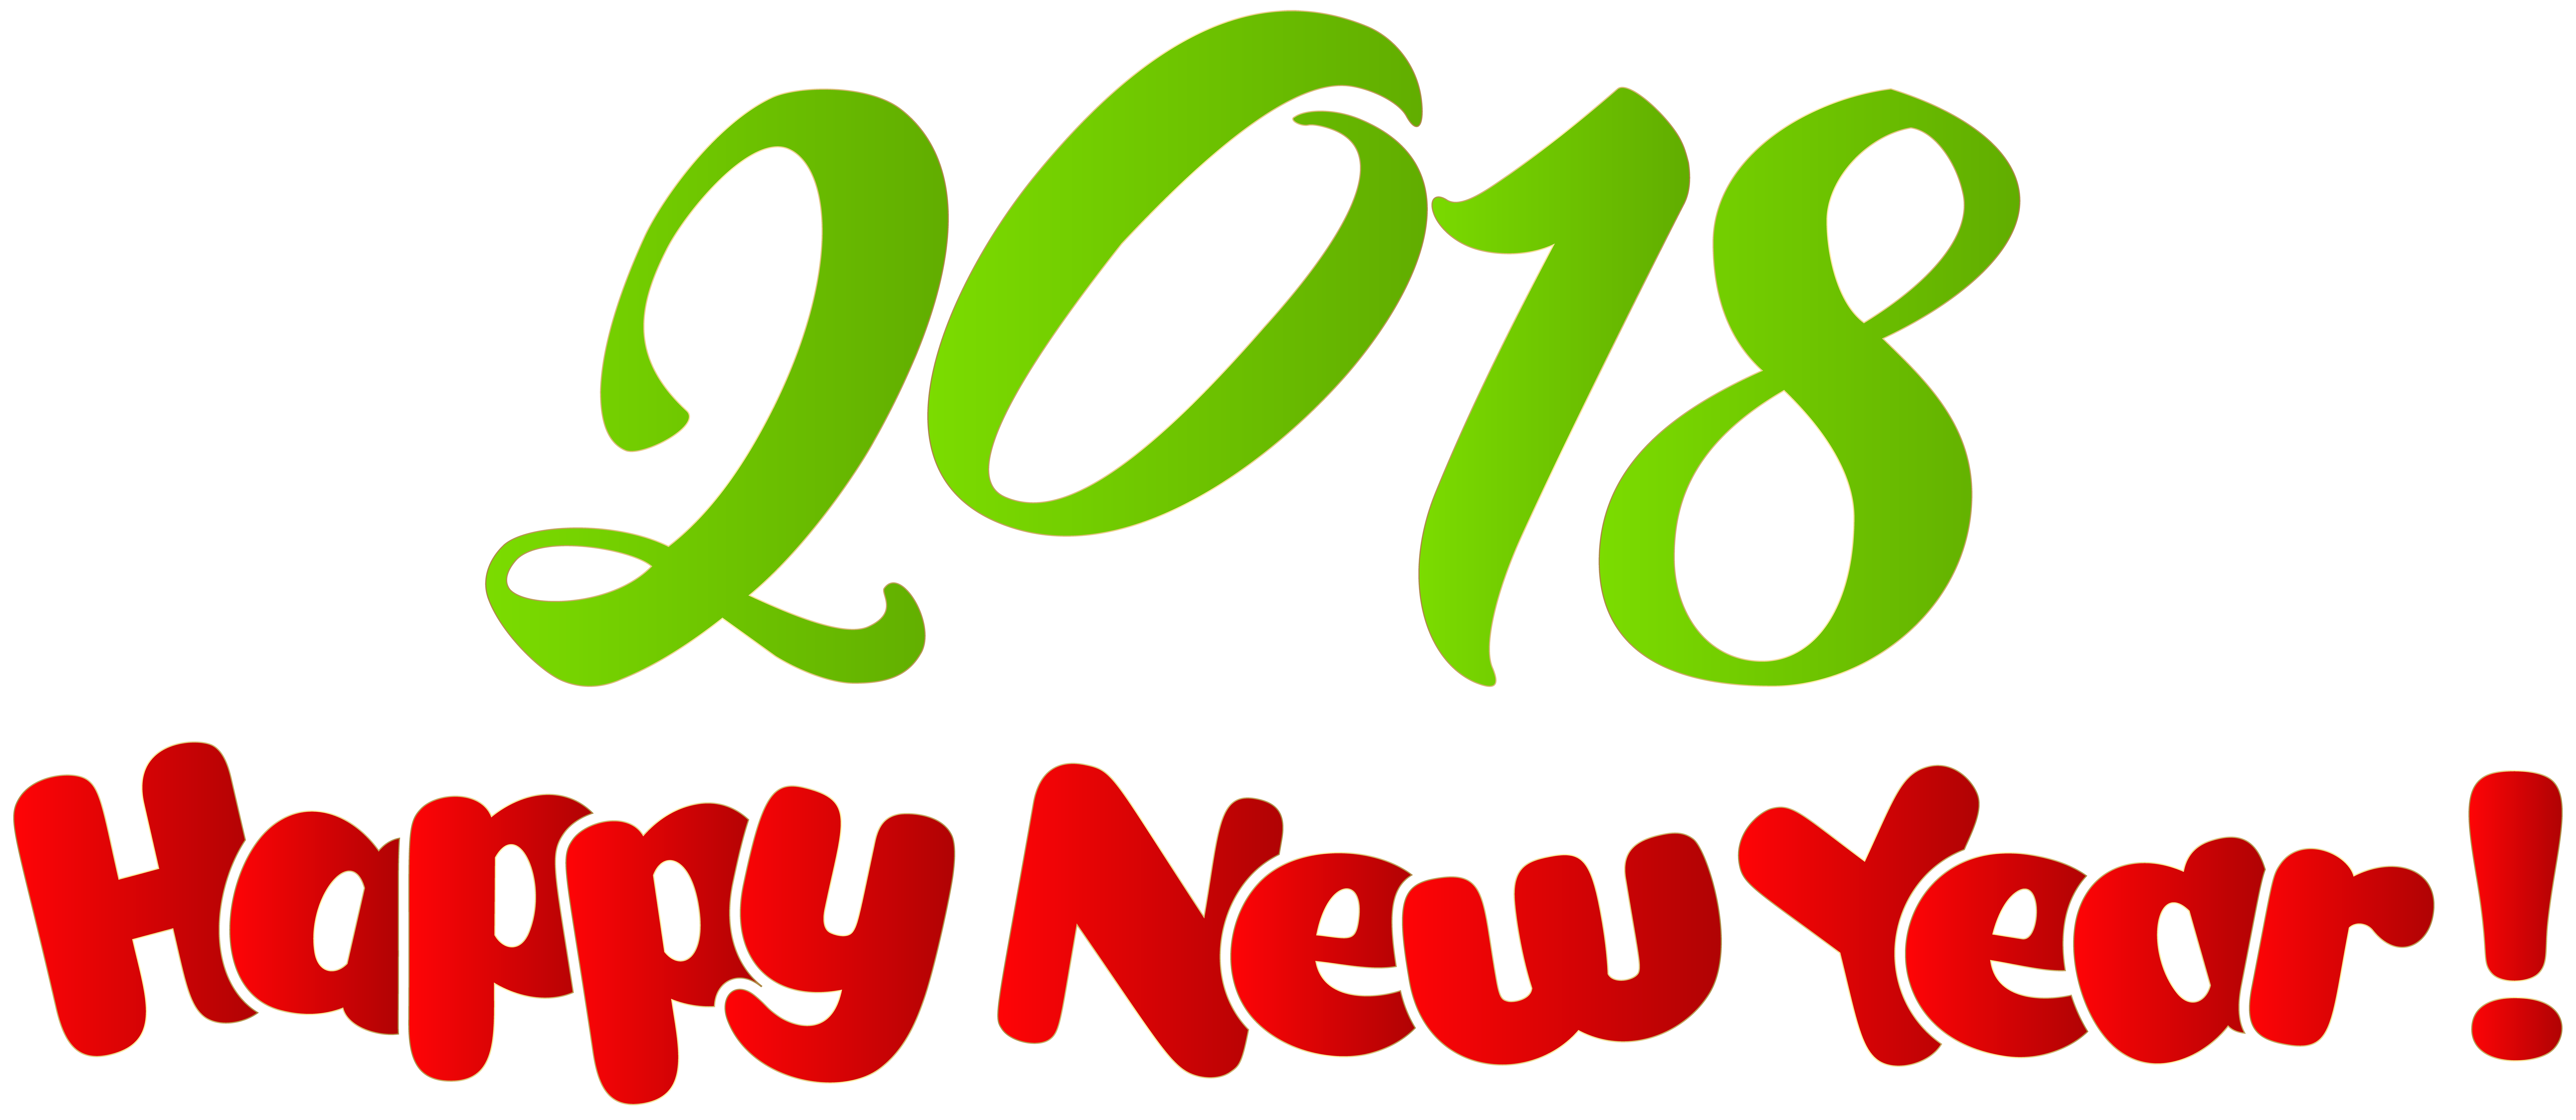 2018 Happy New Year PNG Clip Art Image.